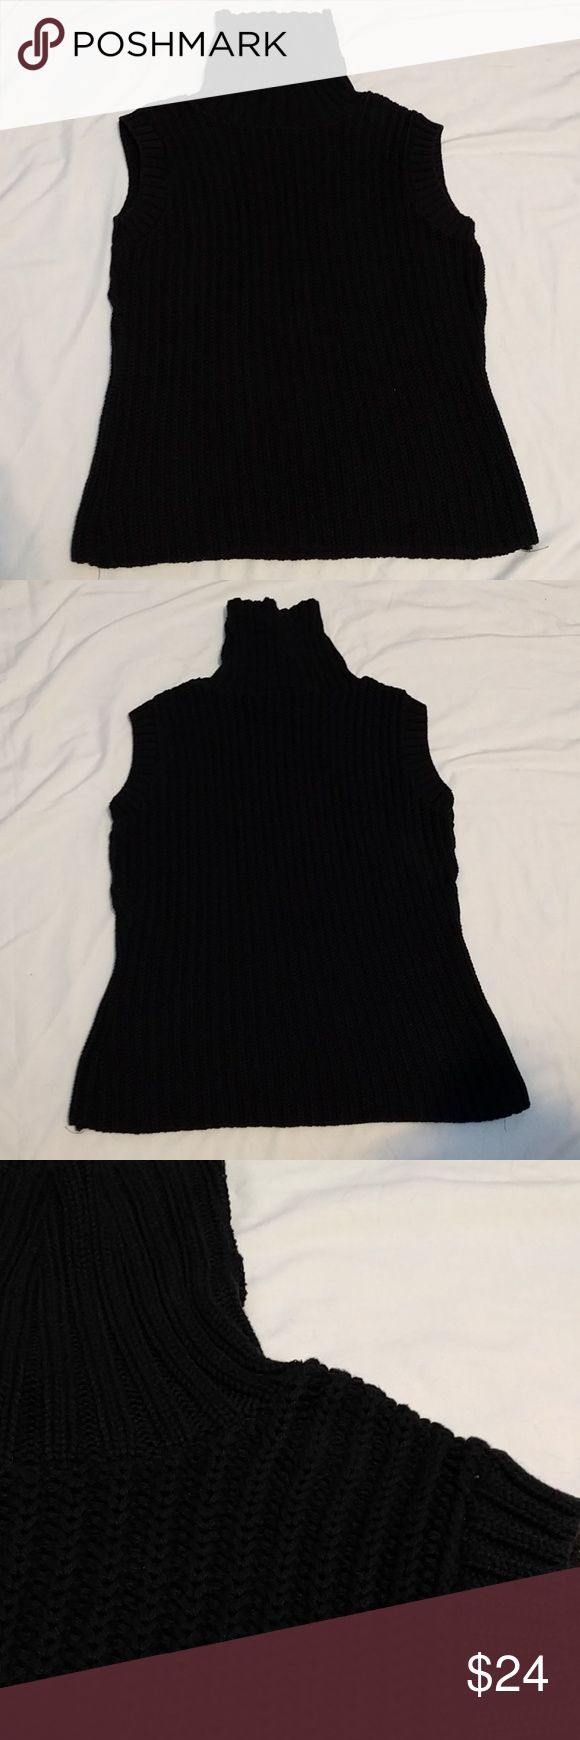 Avalin Cowl-Neck BlackSweater Tank *Avalin Cowl-Neck Black Sweater Tank *100% Cotton *Avalon brand sold at Centery 21 *Looks so chic paired with some white jeans! *Used, like new condition other than two tiny pulled threads pictured!  Please feel free to make an offer or ask questions!  xoxo Karlynn [: Avalin Sweaters Cowl & Turtlenecks